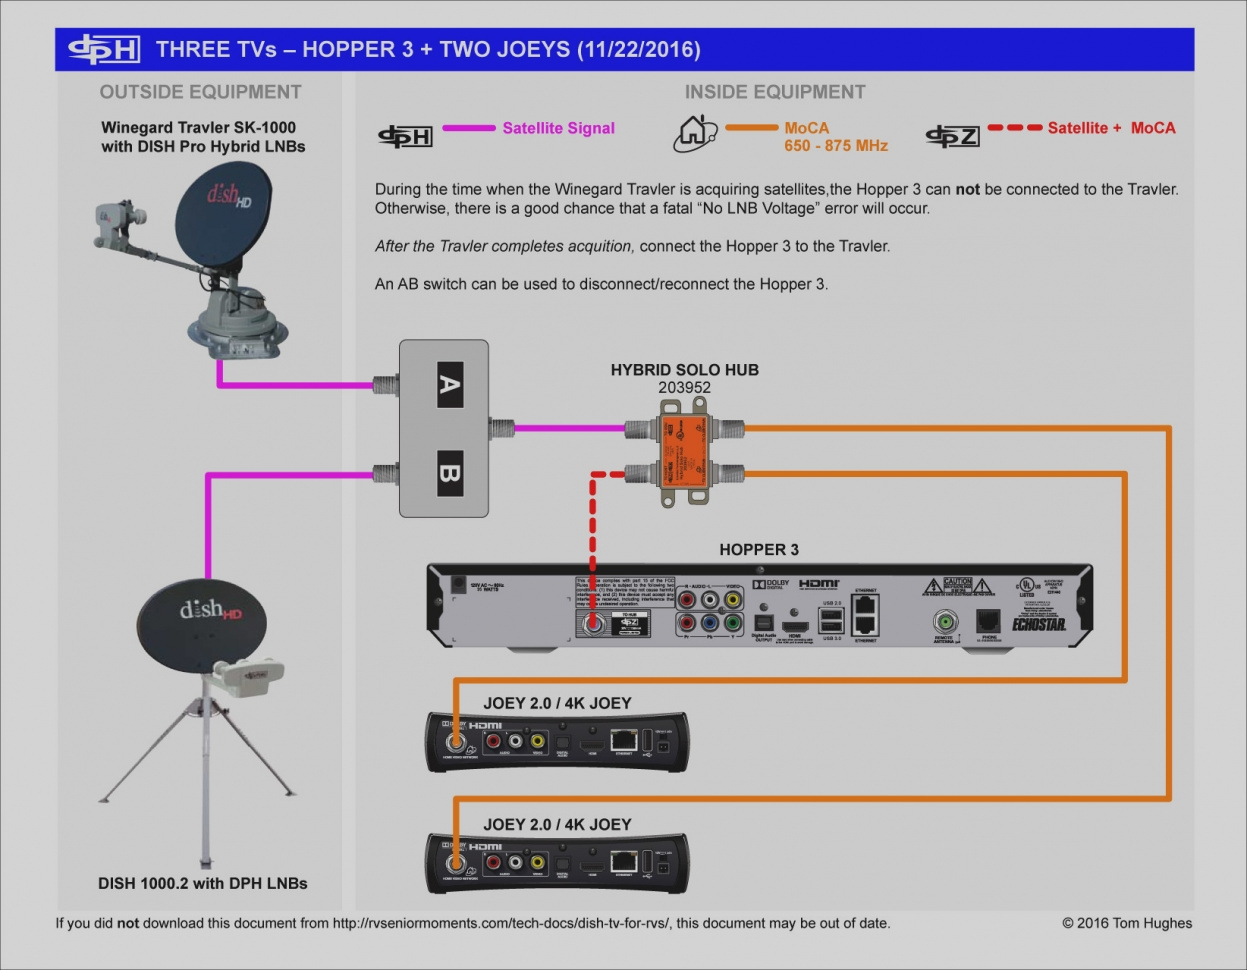 medium resolution of dish network cable diagrams auto electrical wiring diagram dish network cable diagrams